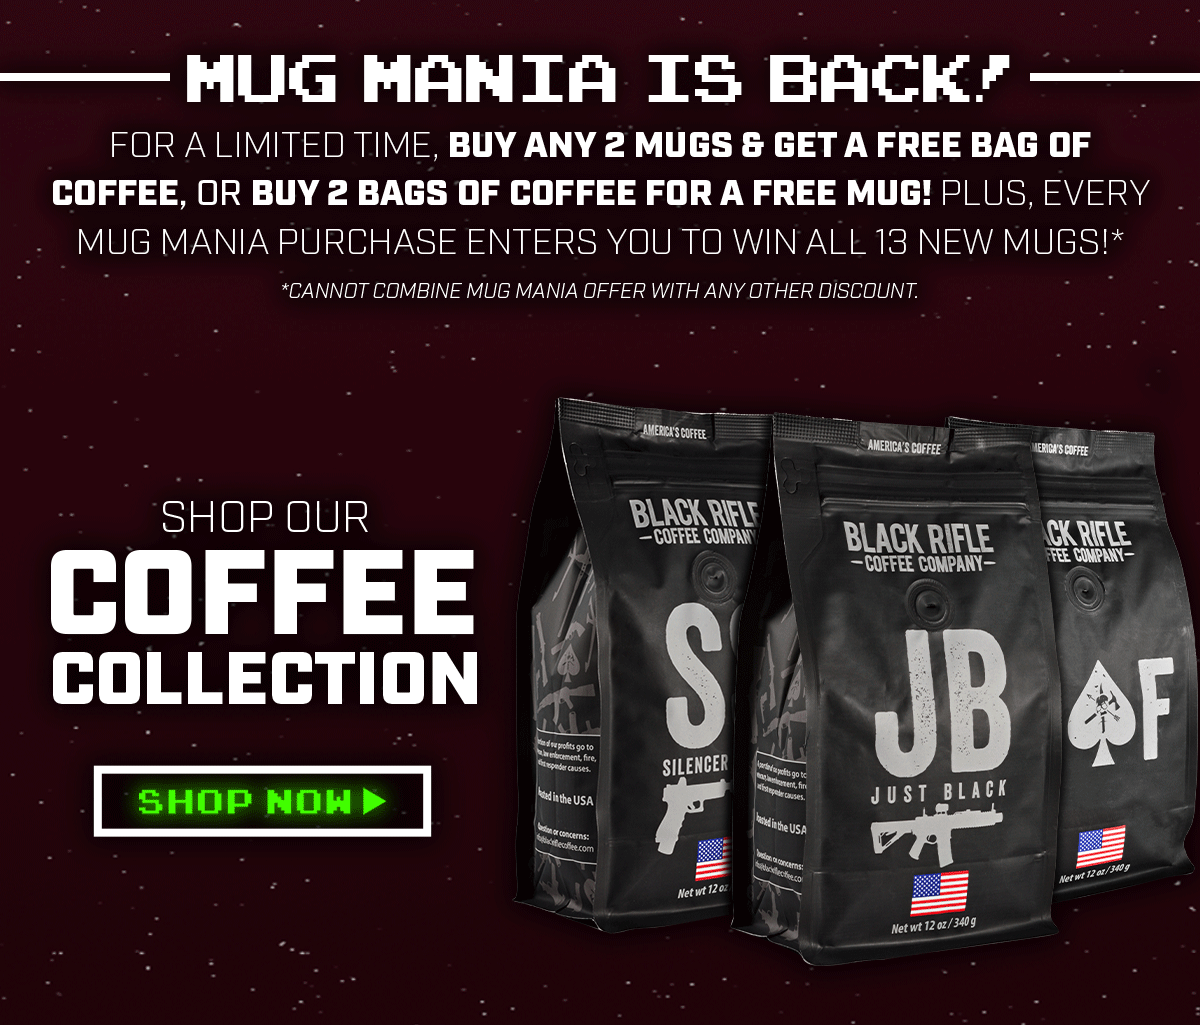 Shop our Coffee Collection